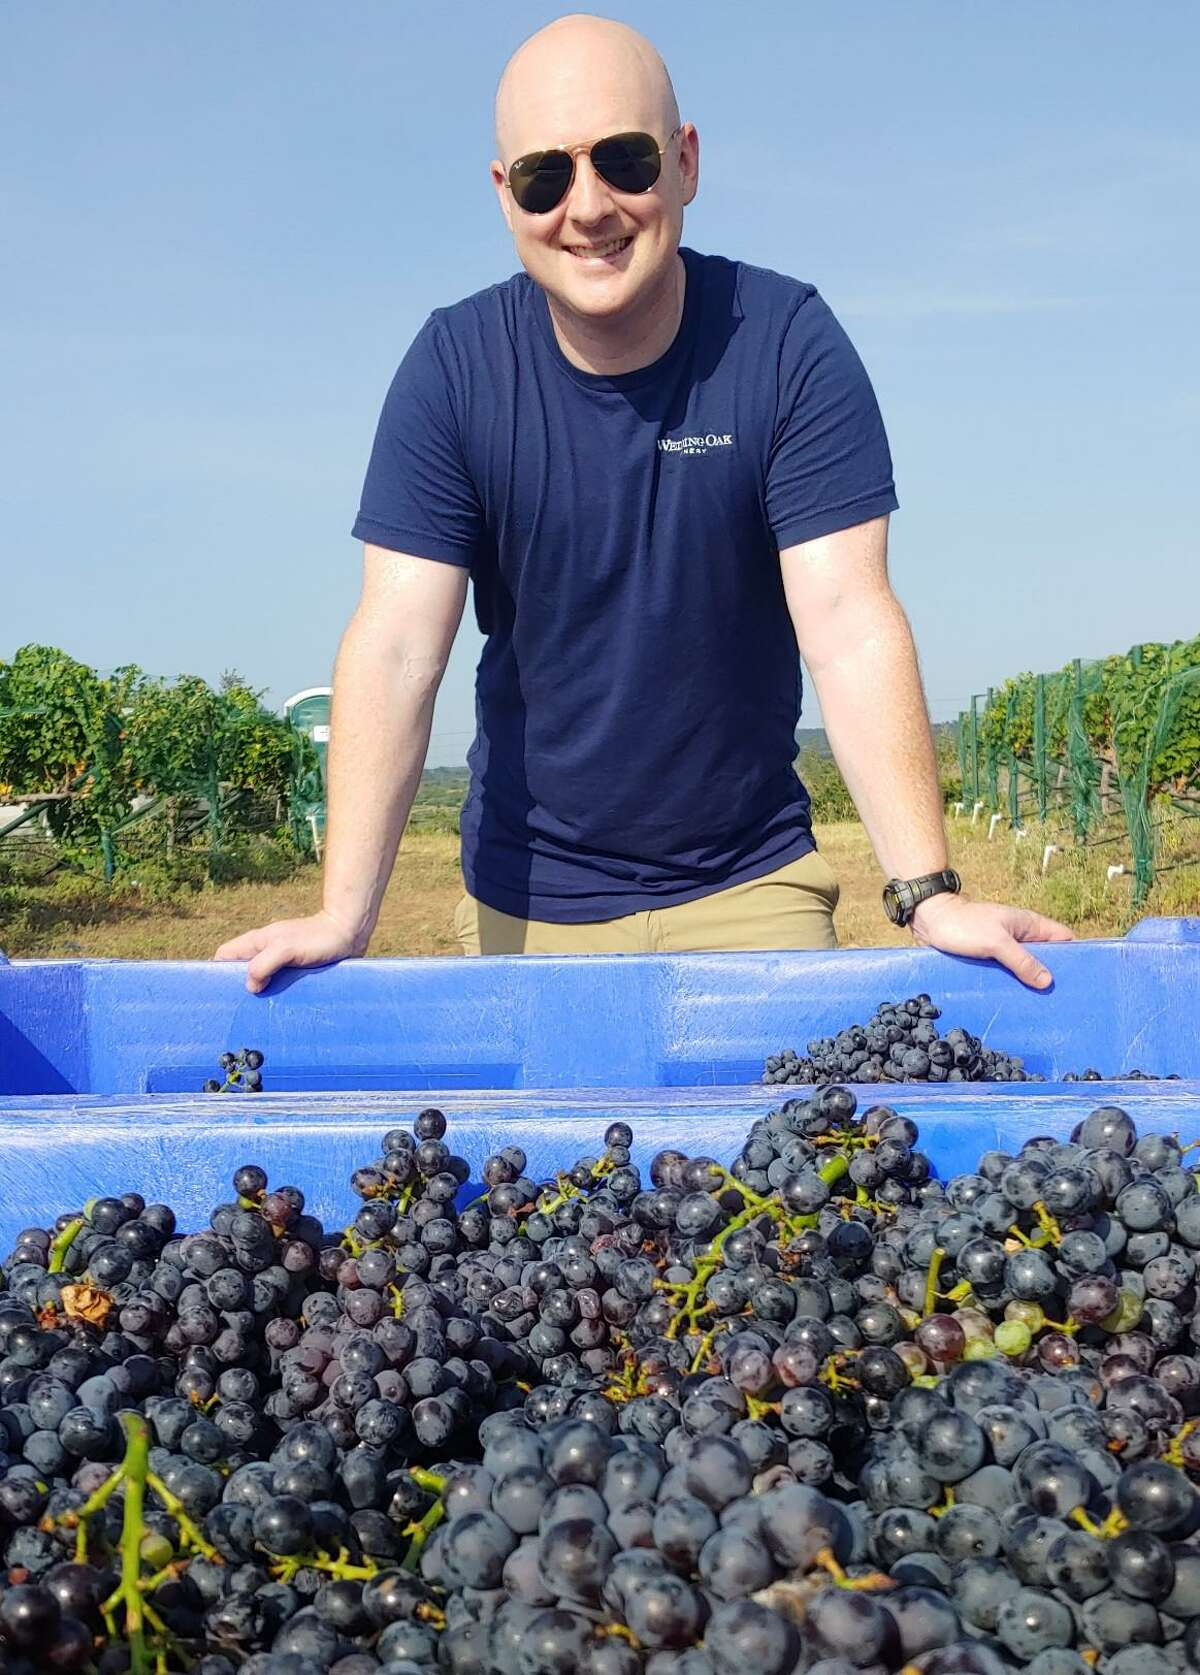 """Pictured is Seth Urbanek of Wedding Oak Winery. Urbanek, winemaker at Wedding Oak Winery said, """"2021 is far from being an ordinary year. If you guessed that the extreme weather in Texas will have an impact on this year's grape crop, you guessed right."""